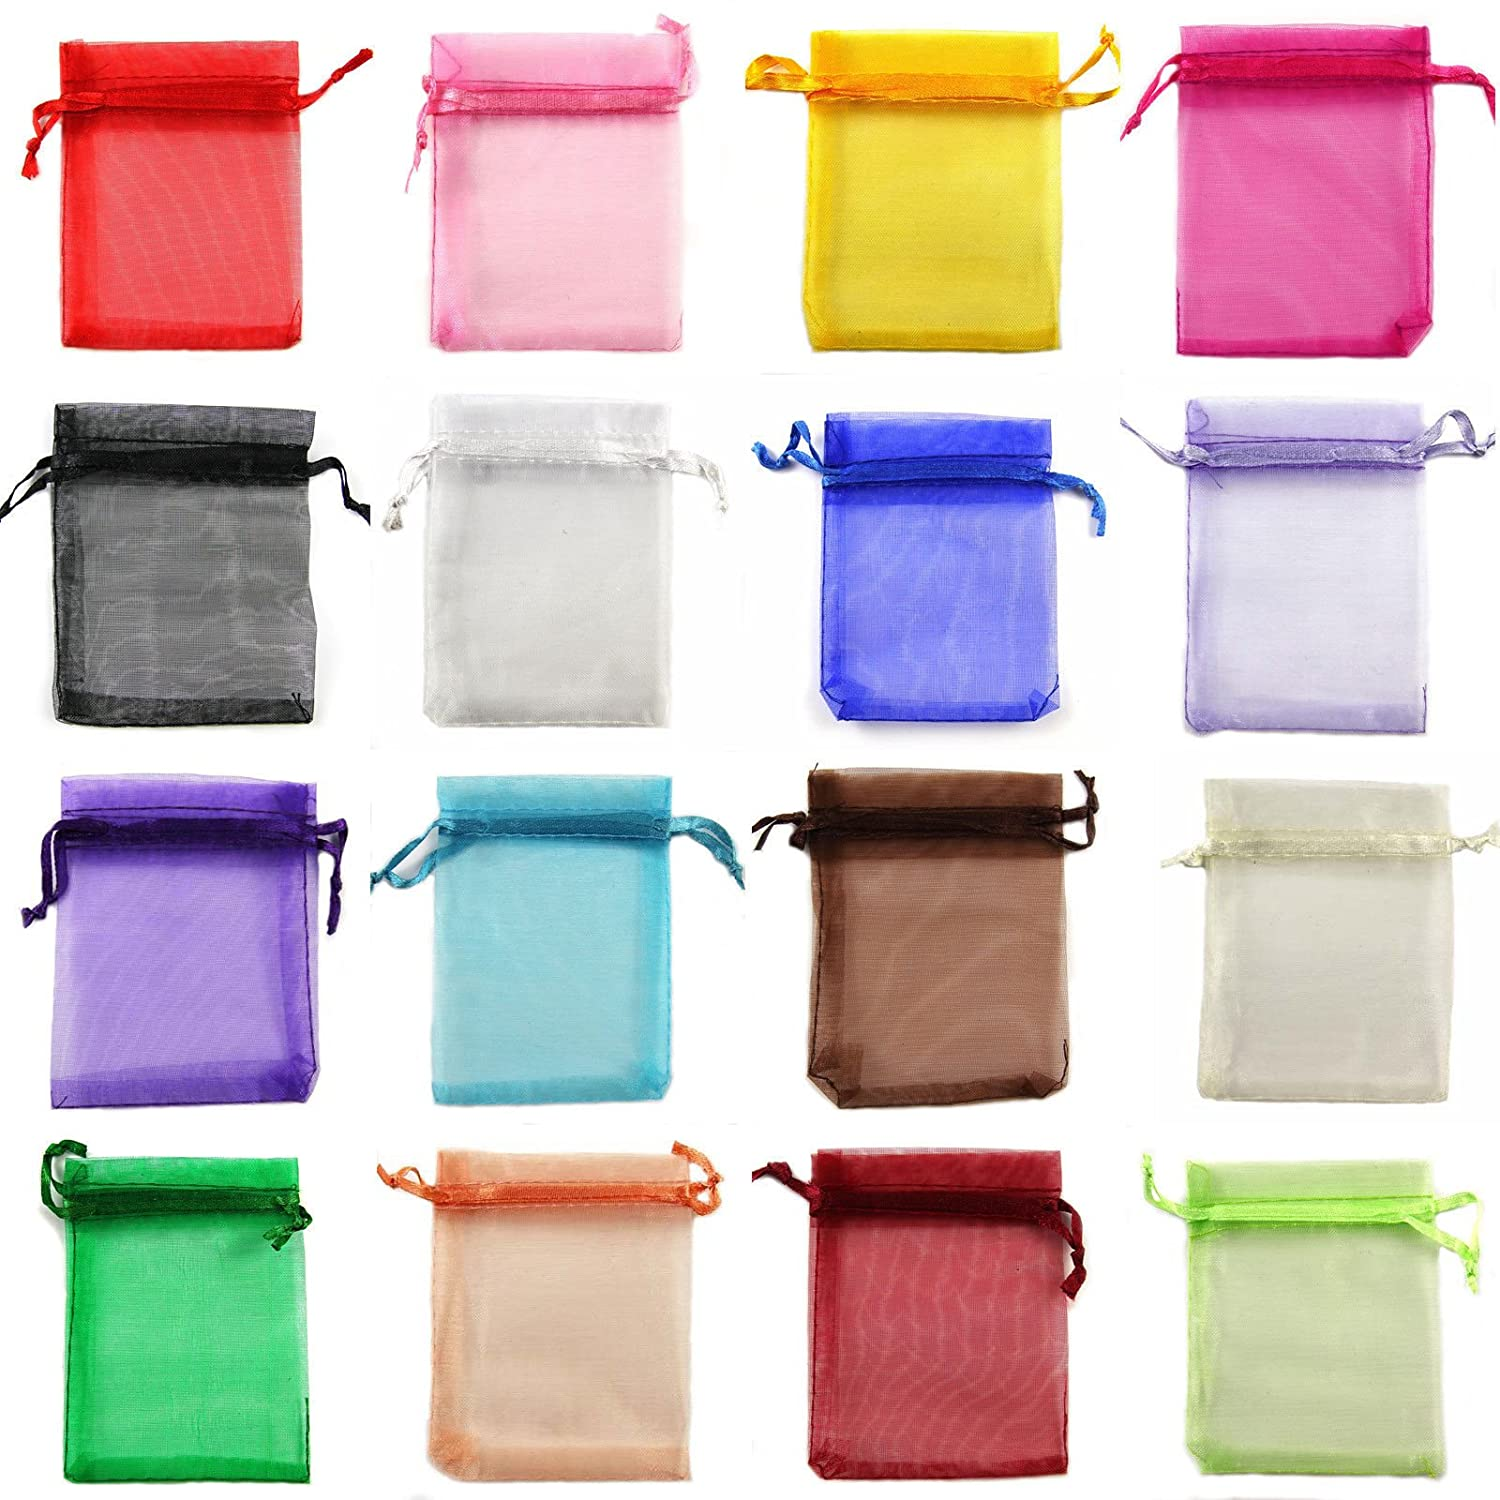 Halulu 100 Pcs 3 x 4 Inches Mixed Color Jewelry Gift Organza Bag Candy Ponch Wedding favors